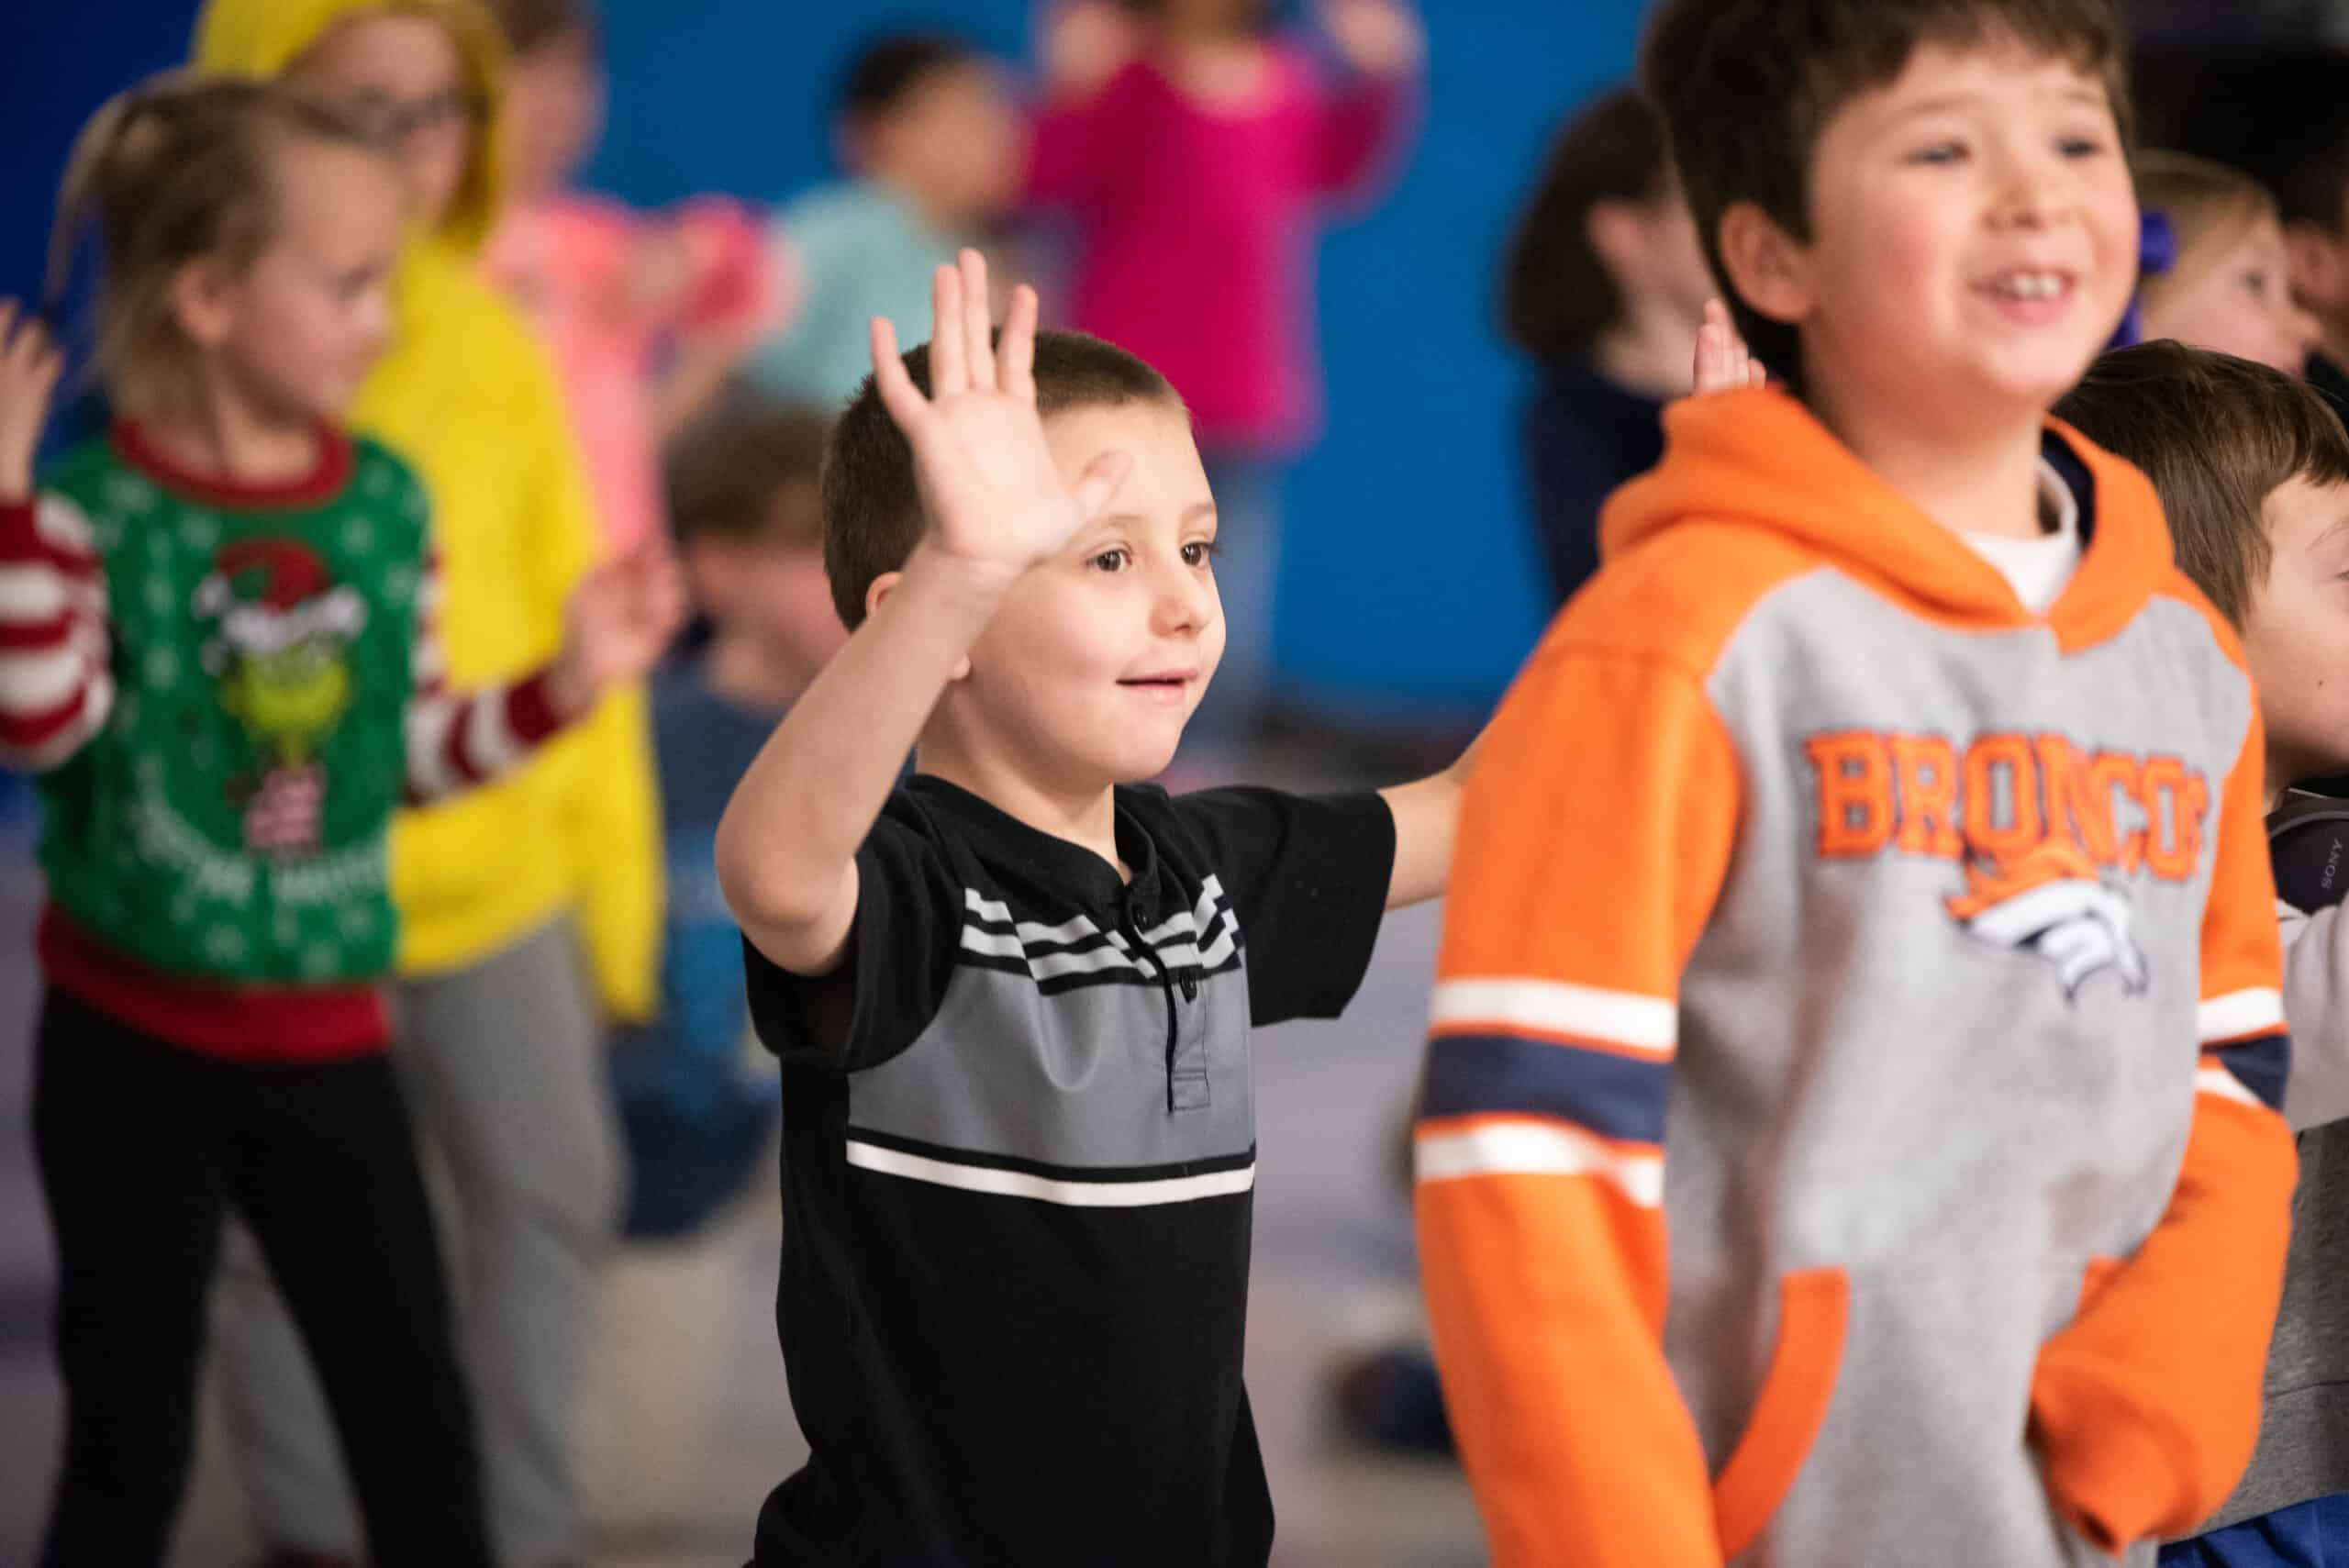 Burlington Elementary student dancing